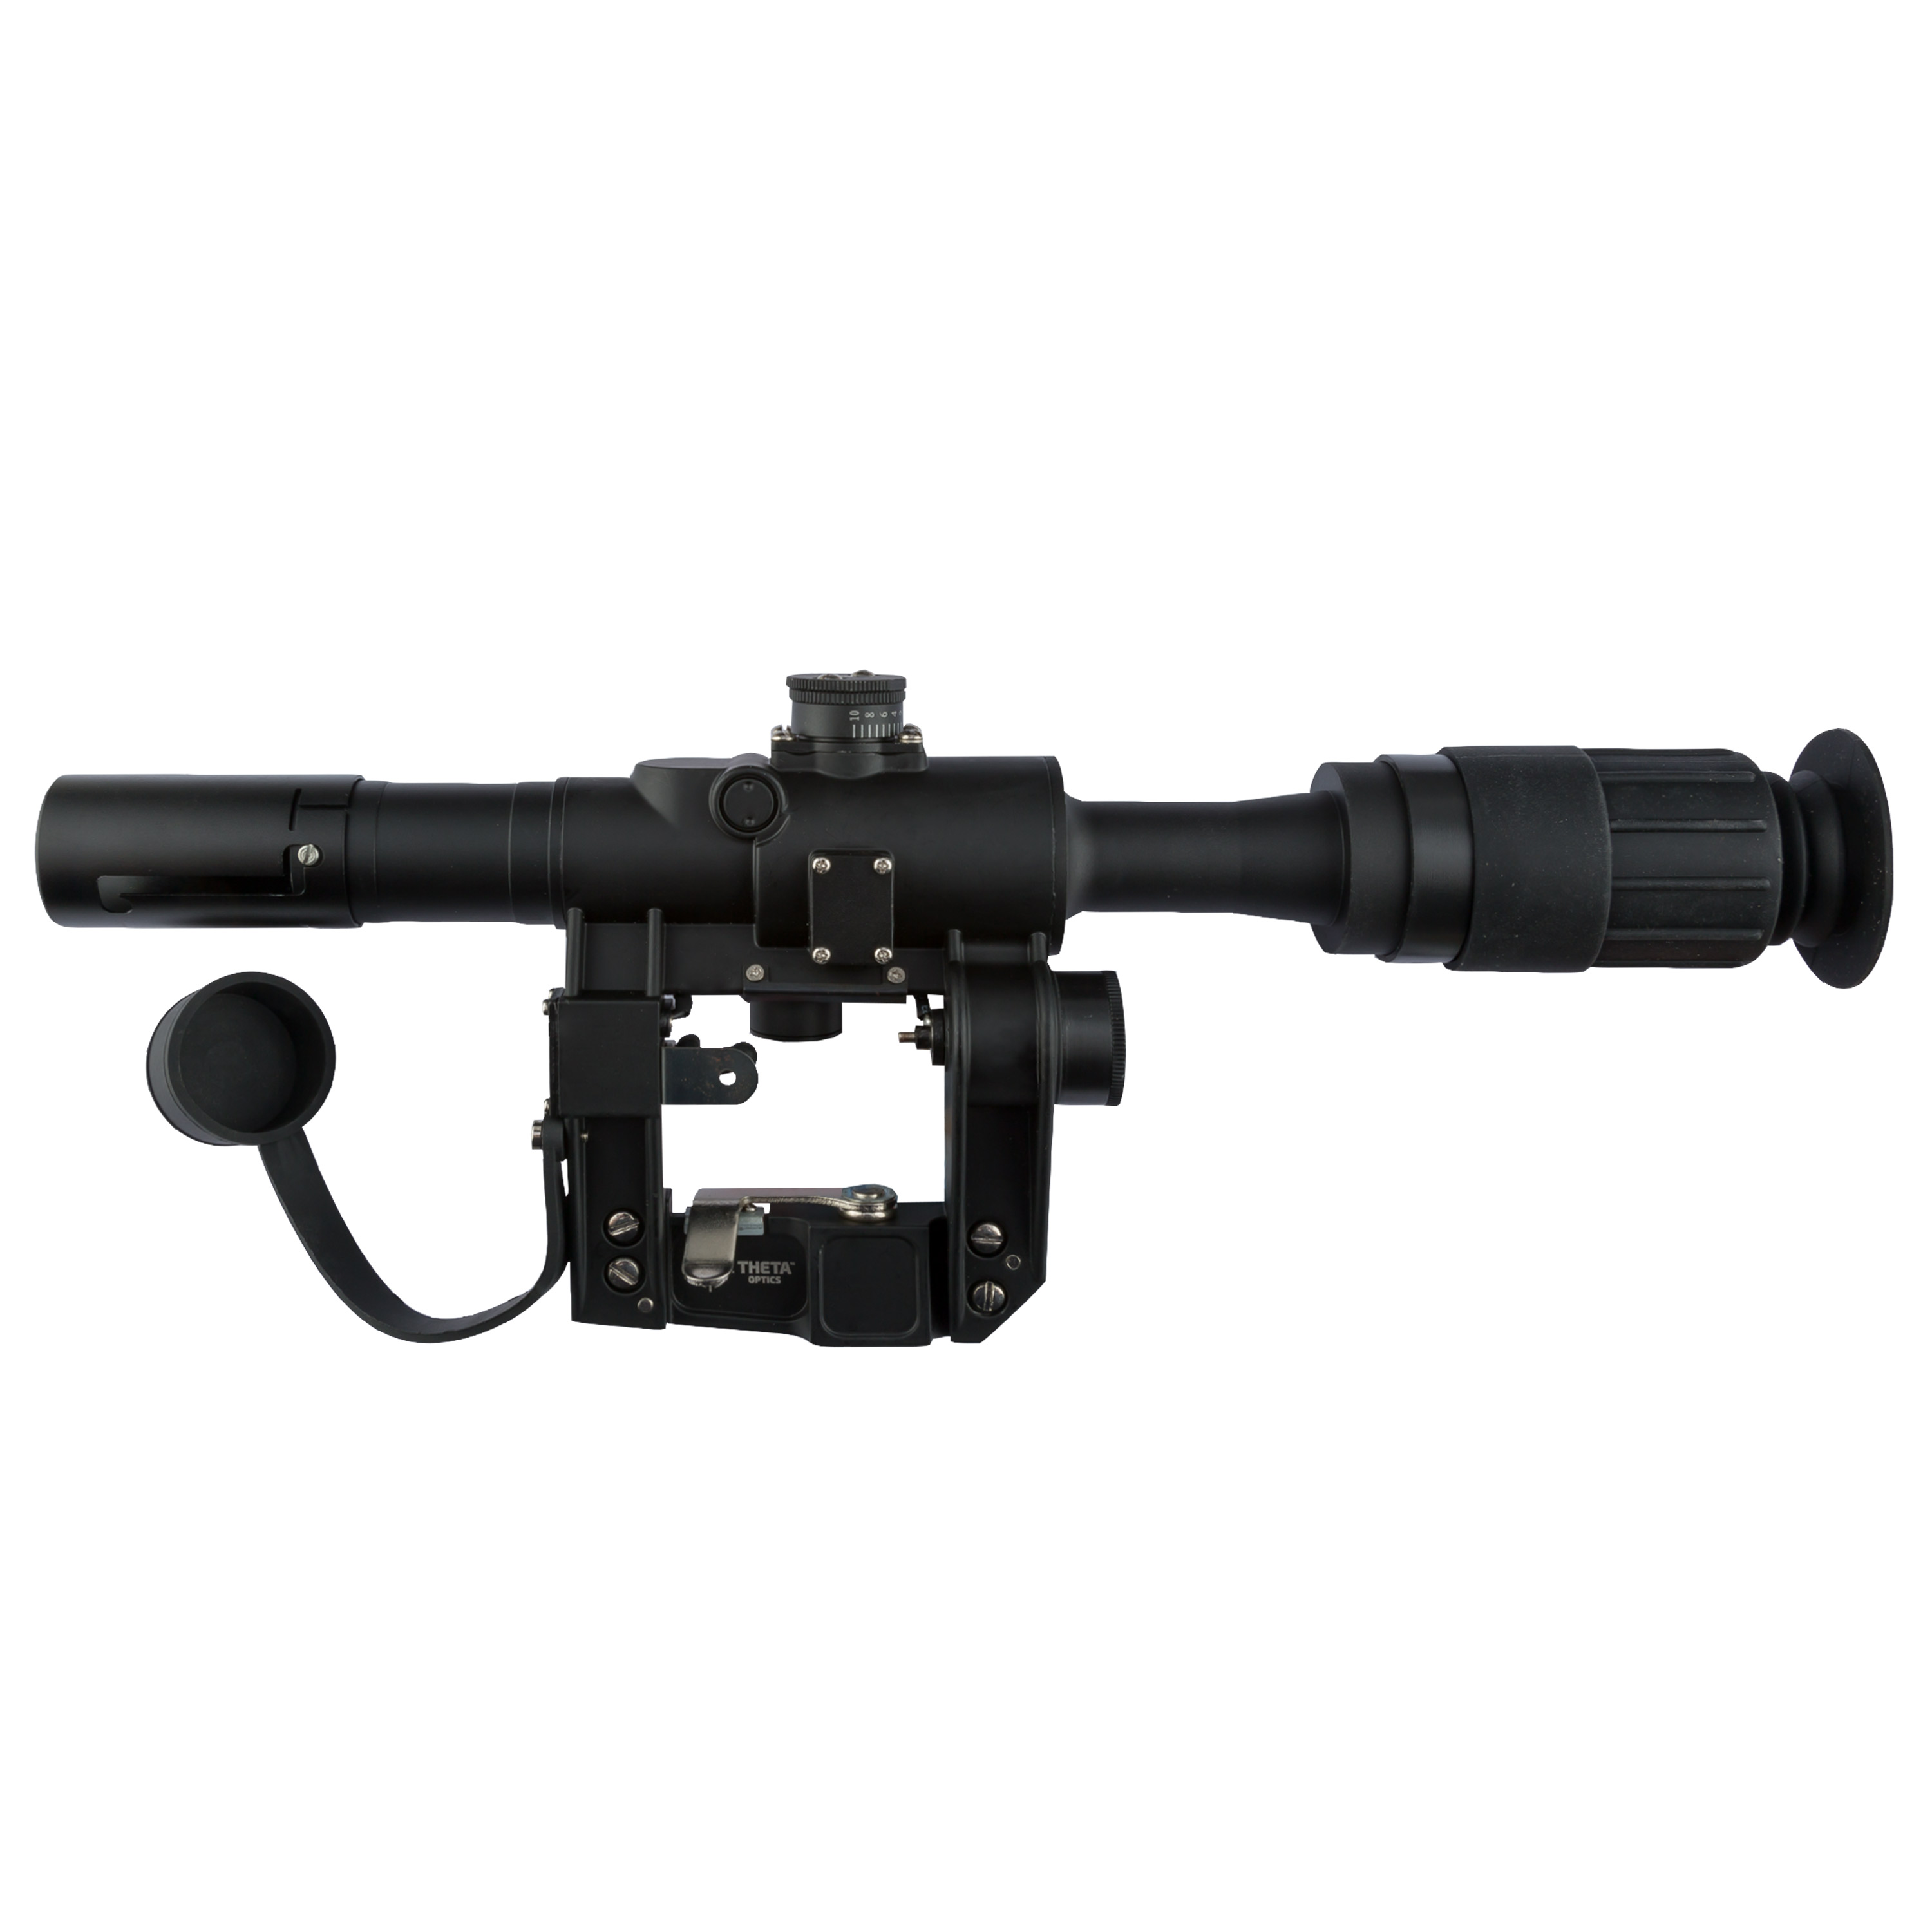 THO PSO-1 Scope with SWD Mount black